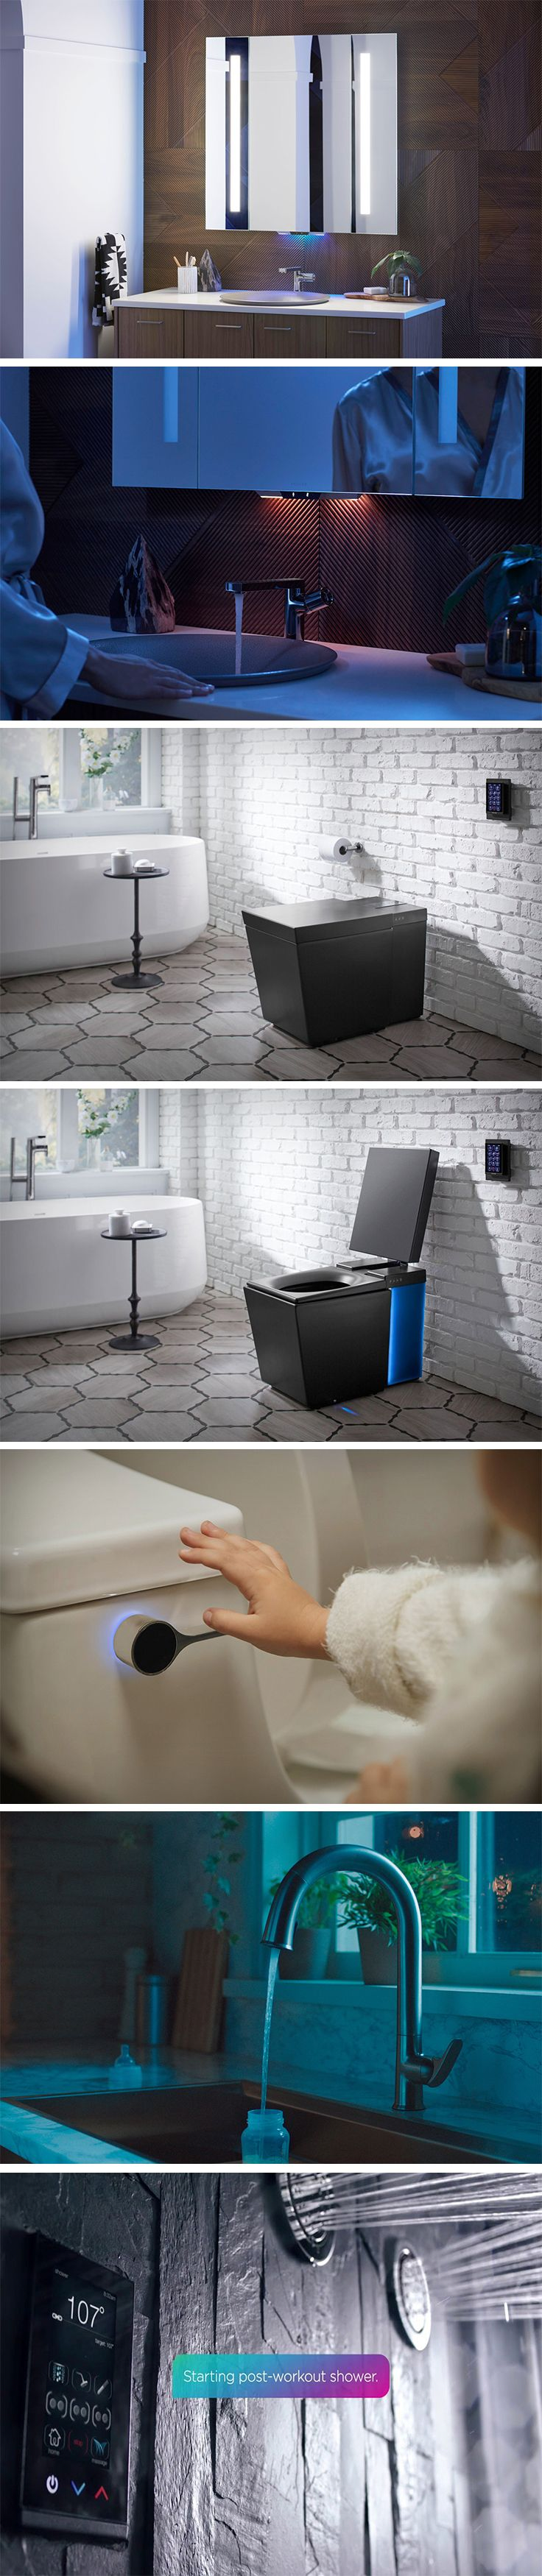 One Company To Keep An Eye On Is The Ever Impressive Kohler, Who This Year  Have Announced Their New Smart Home Products With U0027KOHLER Konnectu0027 U2013 Intu2026